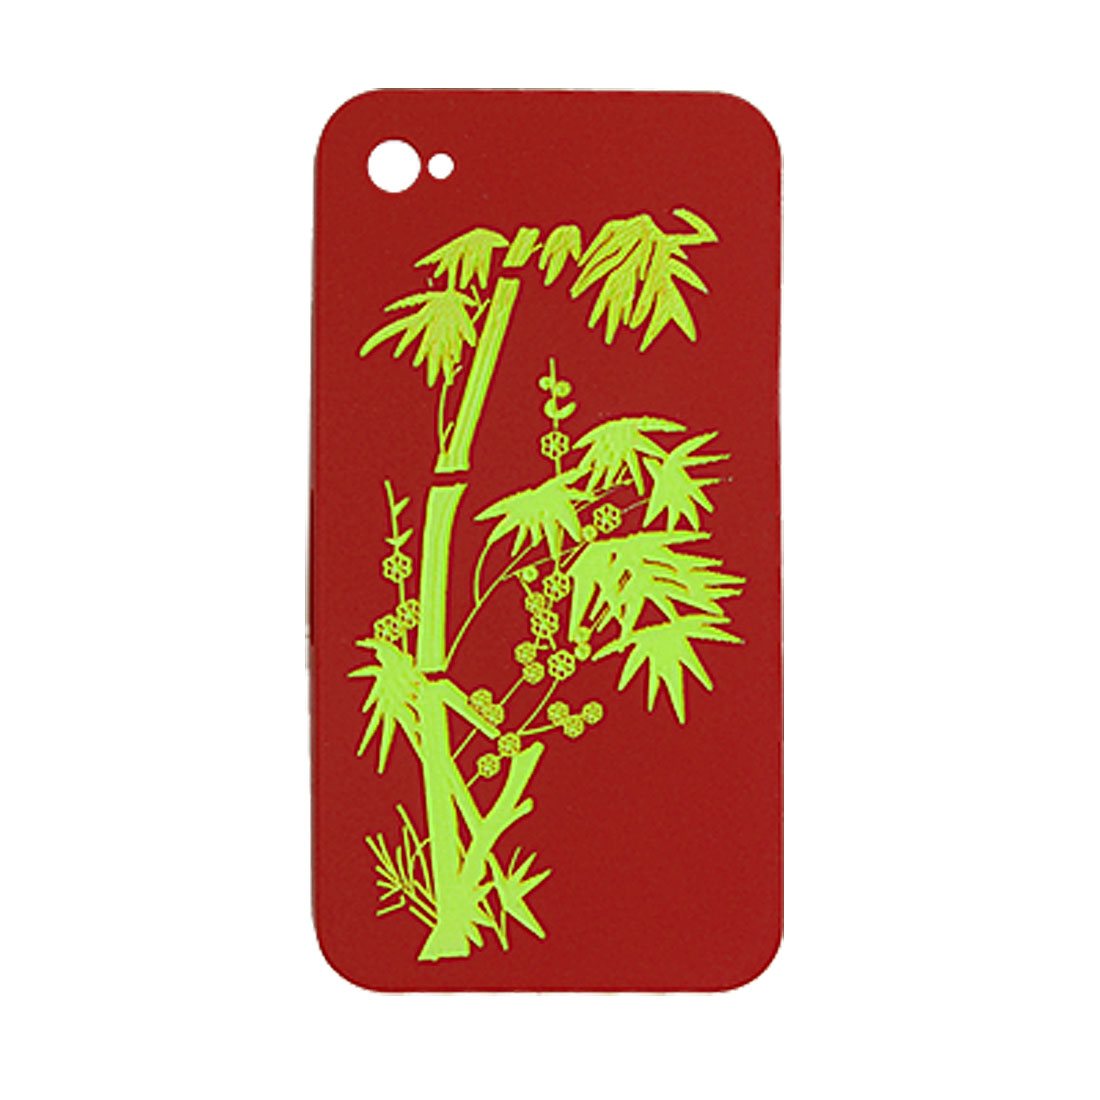 Bamboo Pattern Rubberized Red Hard Plastic Case for iPhone 4 4G